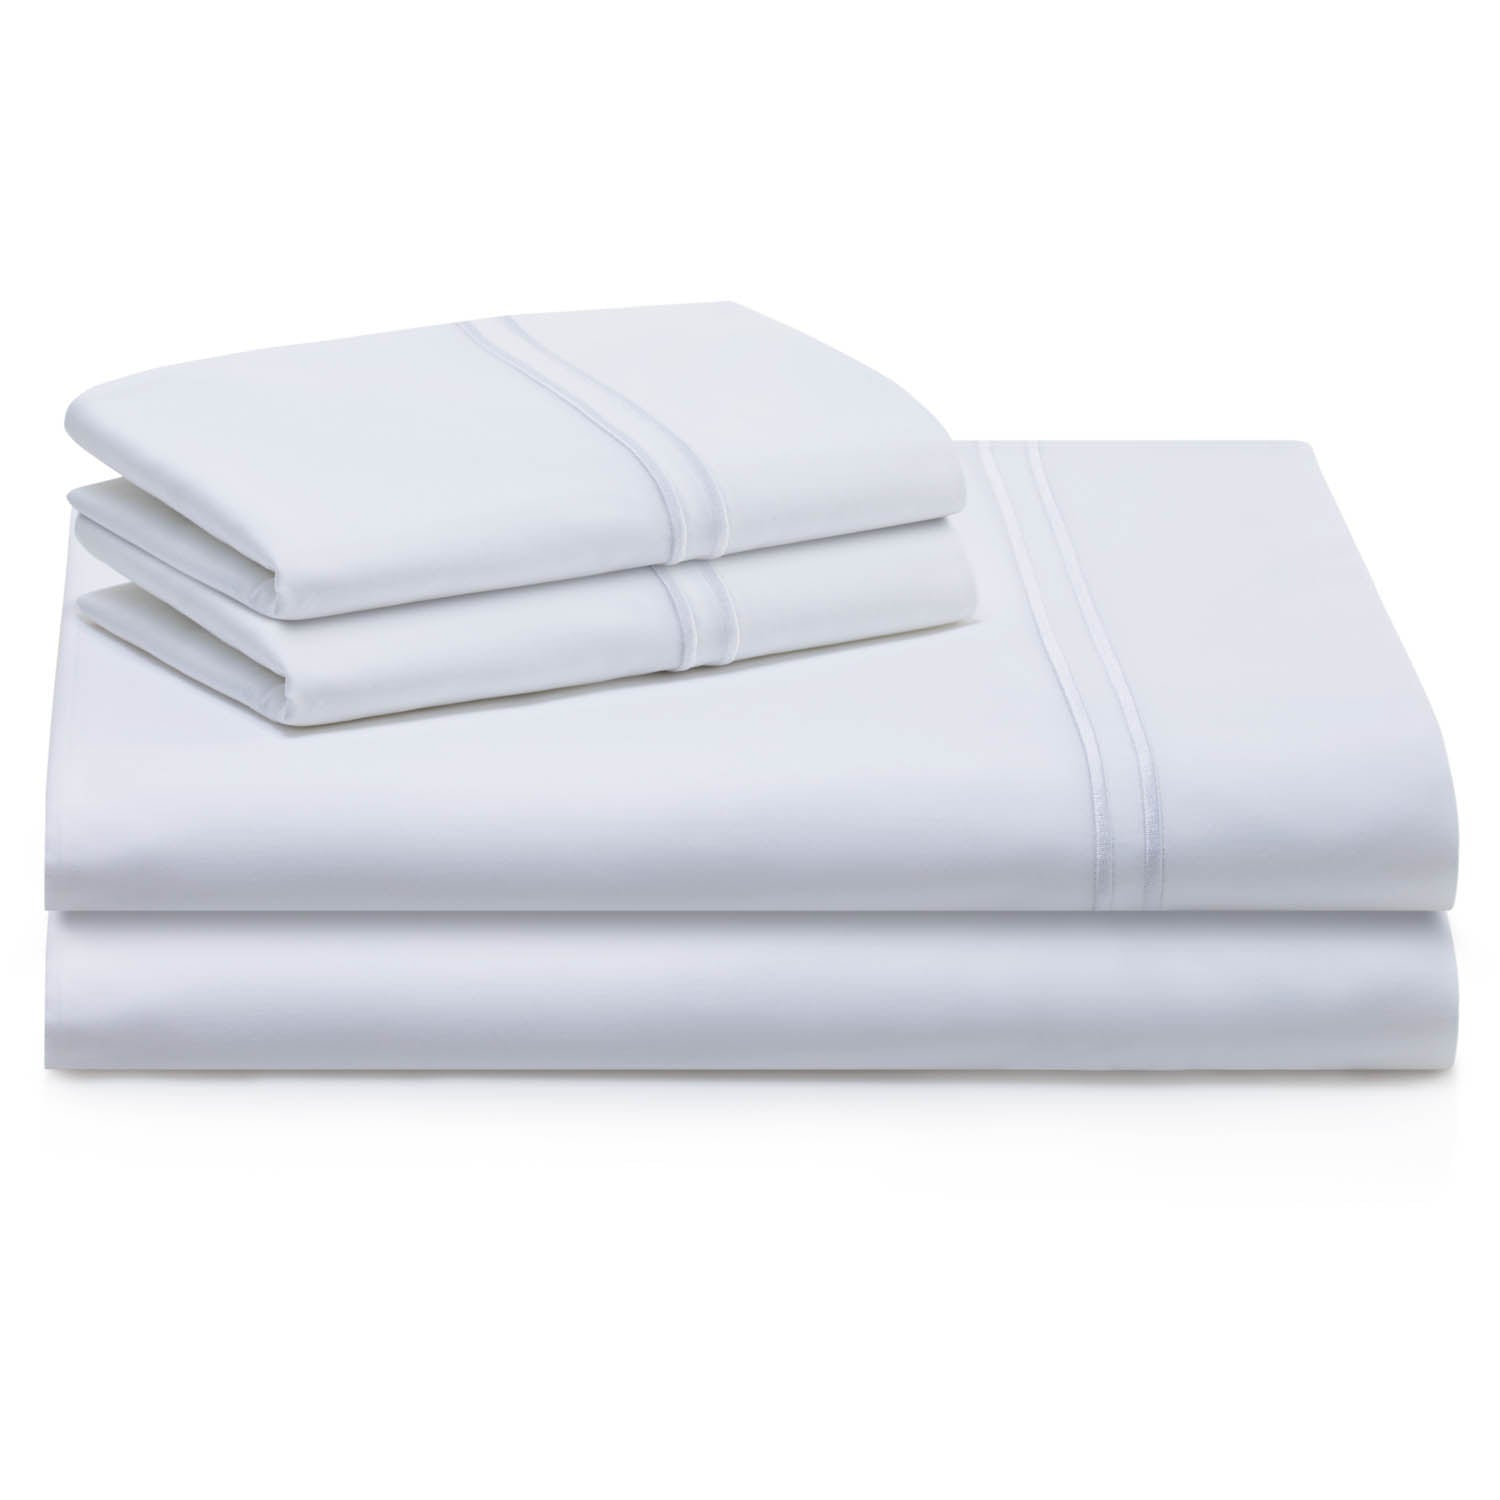 Supima Cotton Sheets Cal King White - Malouf by Yogasleep